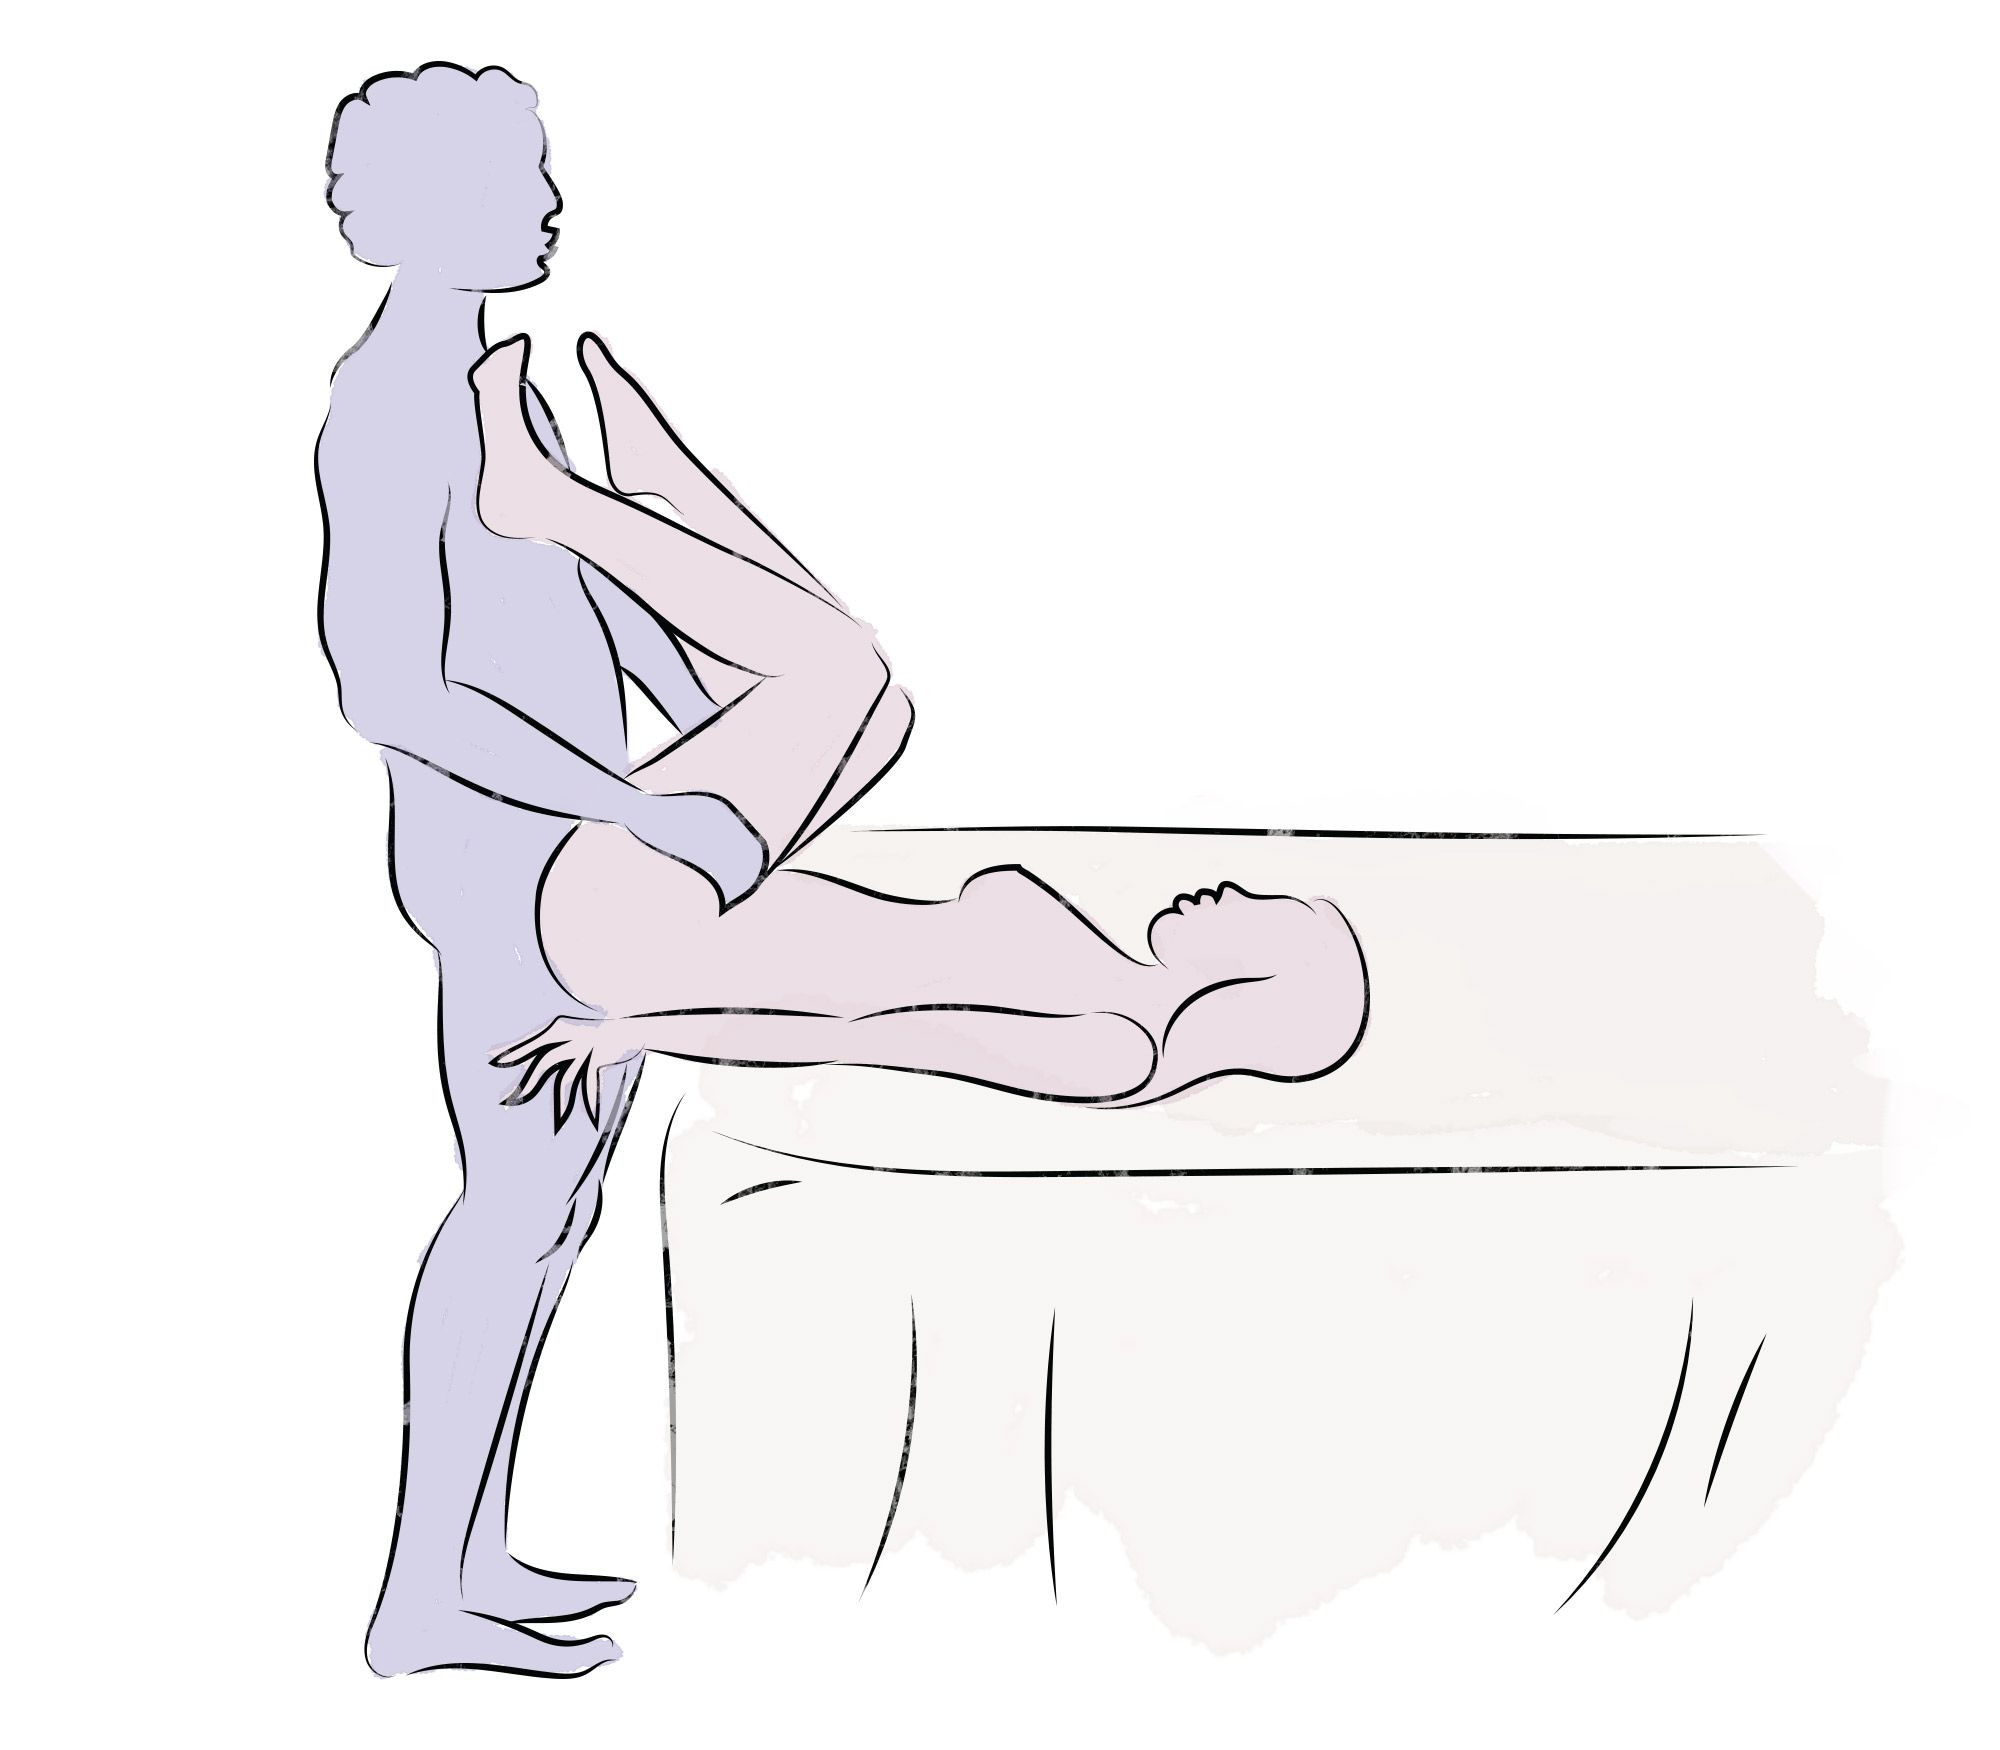 Knees to chest sex position